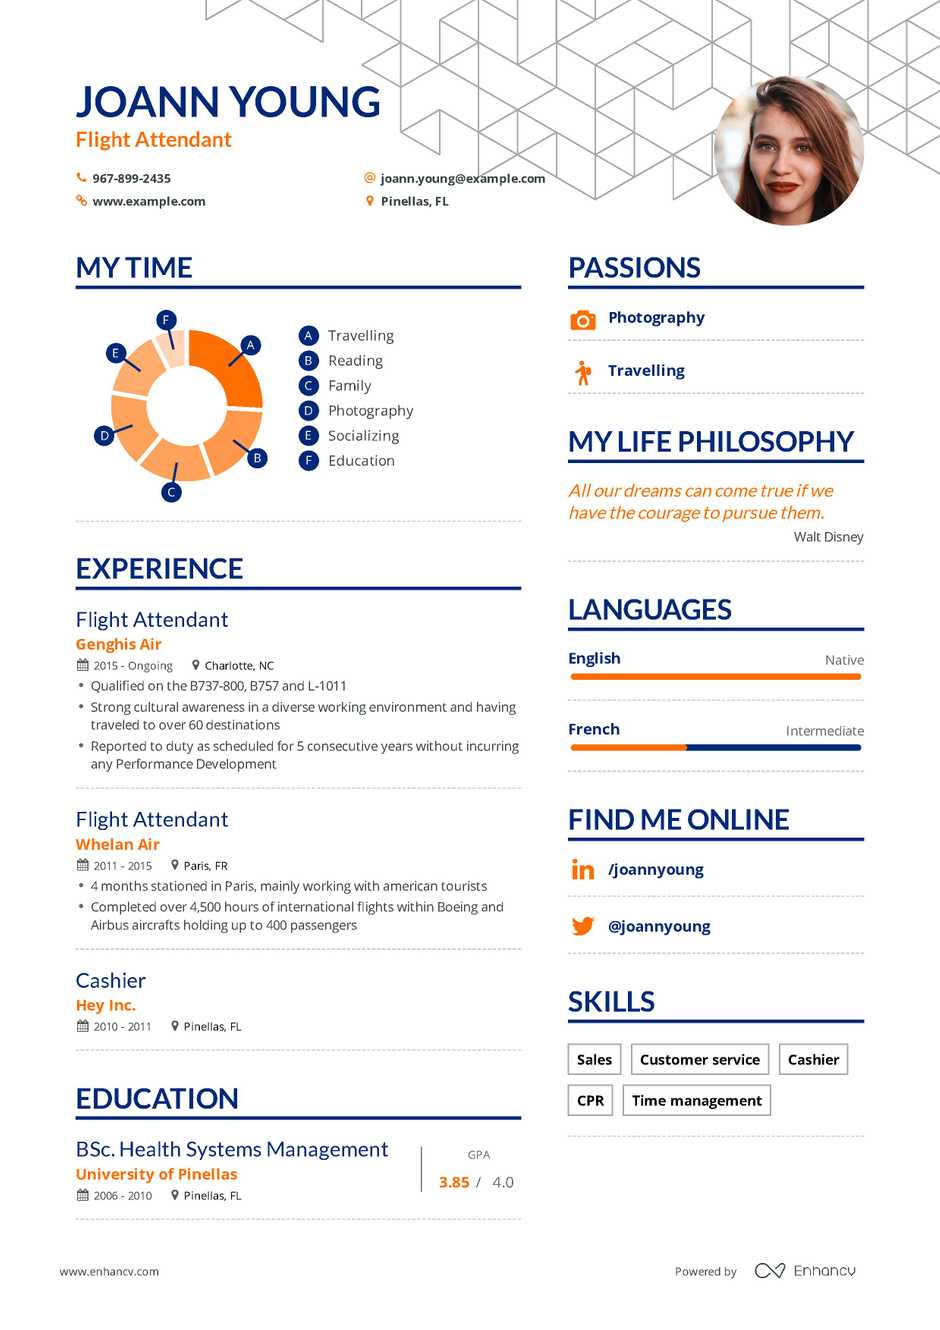 generated-flight-attendant-resume Template Cover Letter For Career Change Flight Attendant Example Vyxn on